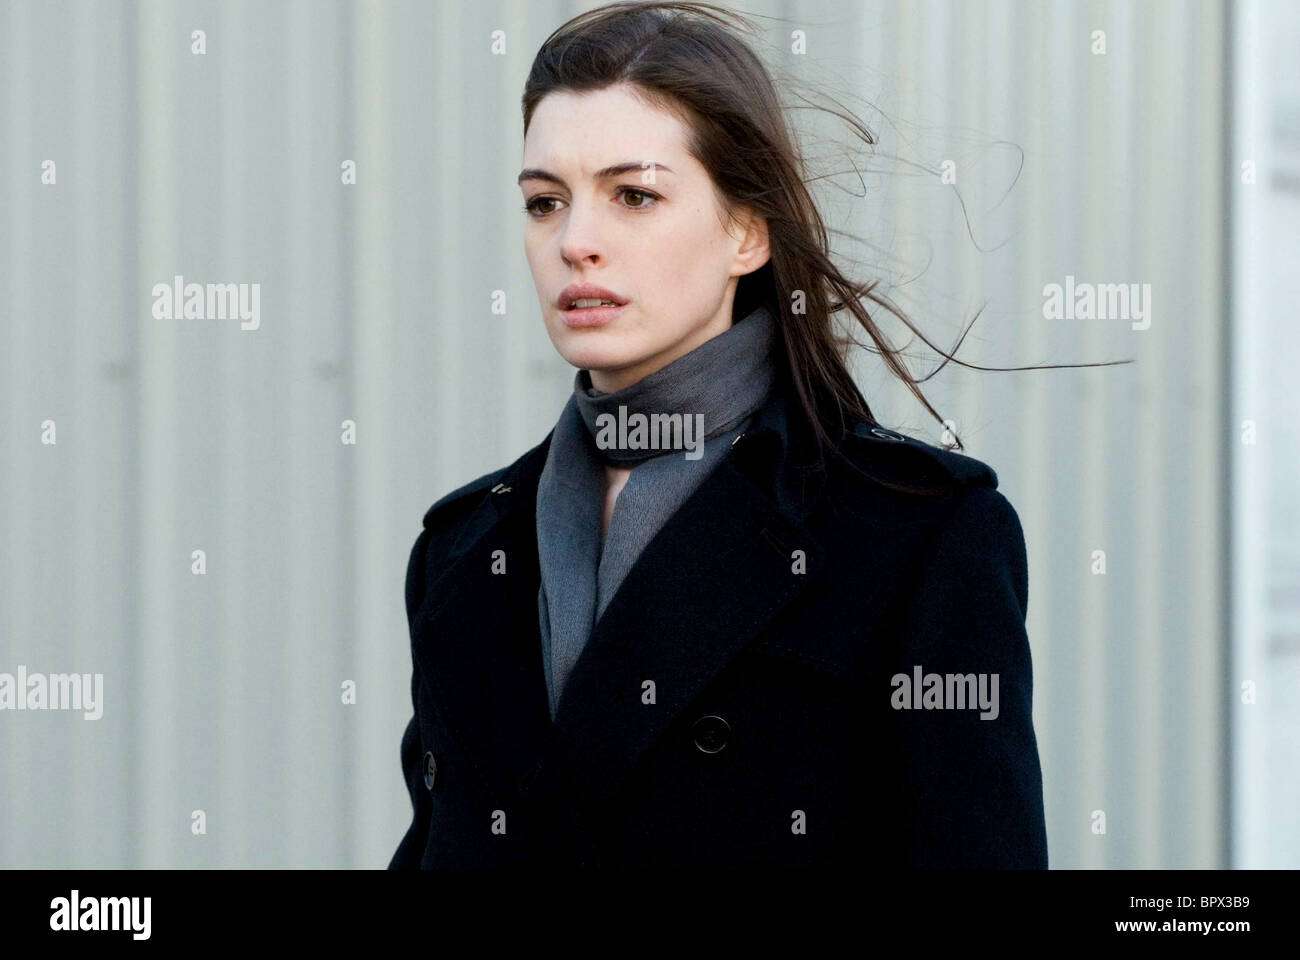 Anne Summers Stock Photos Amp Anne Summers Stock Images Alamy